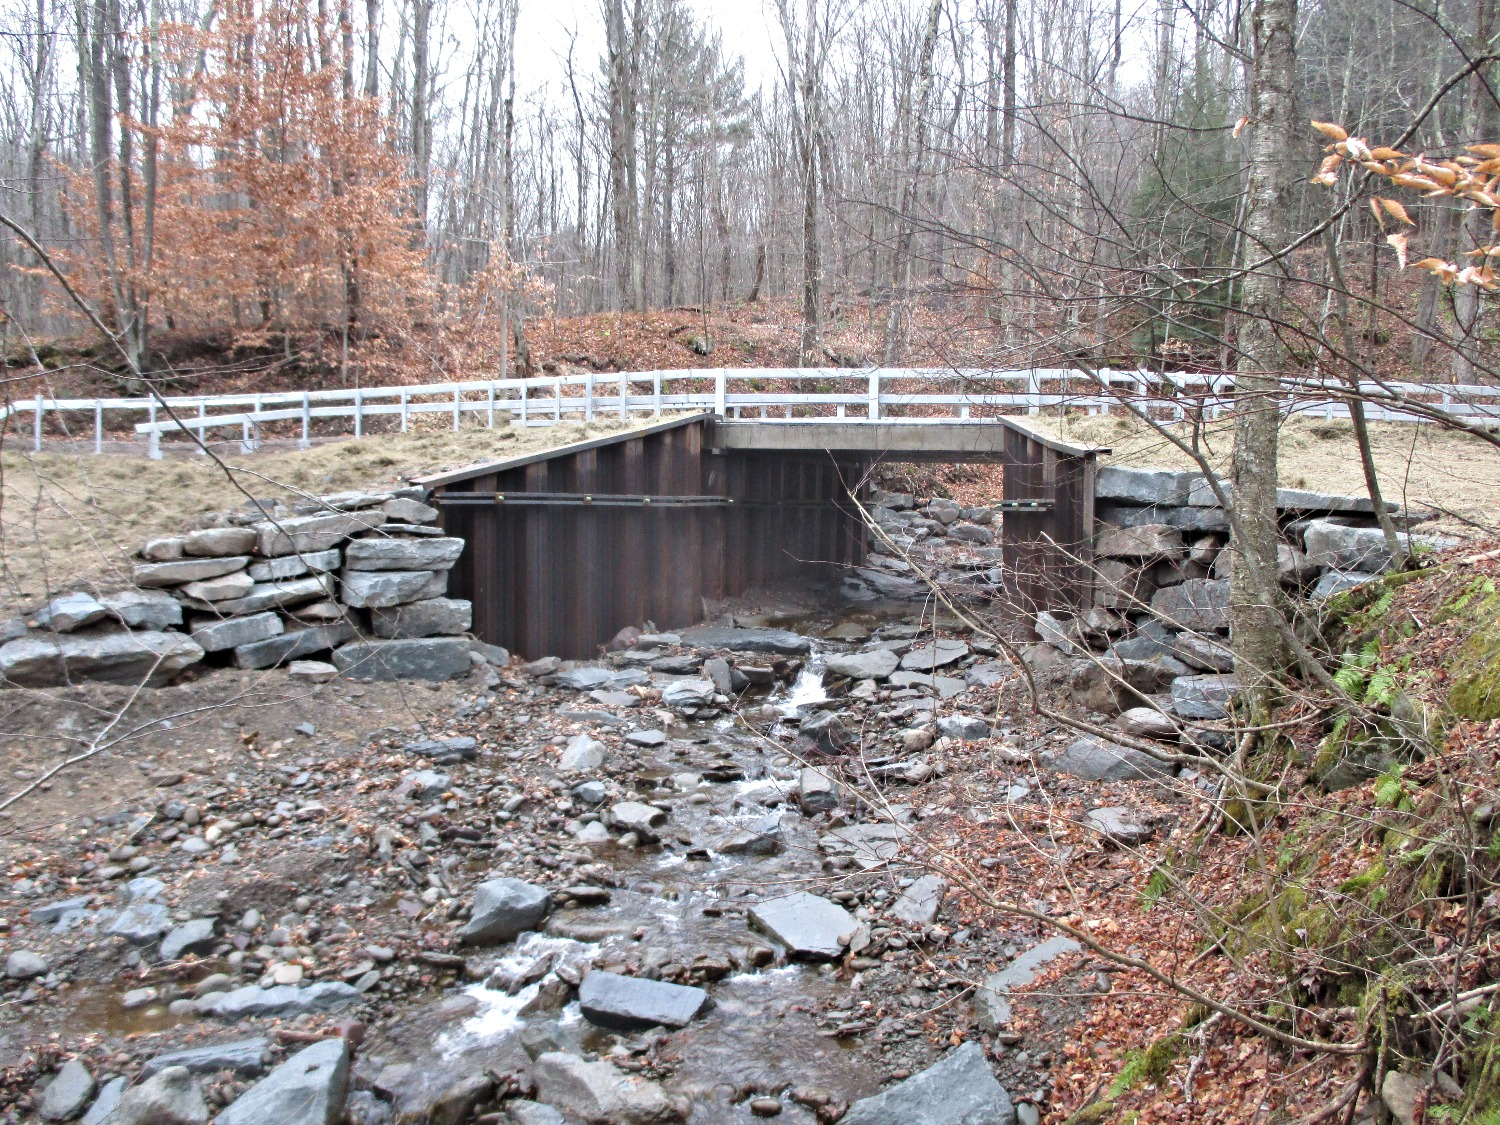 Town of Colchester, NY- BergBrook